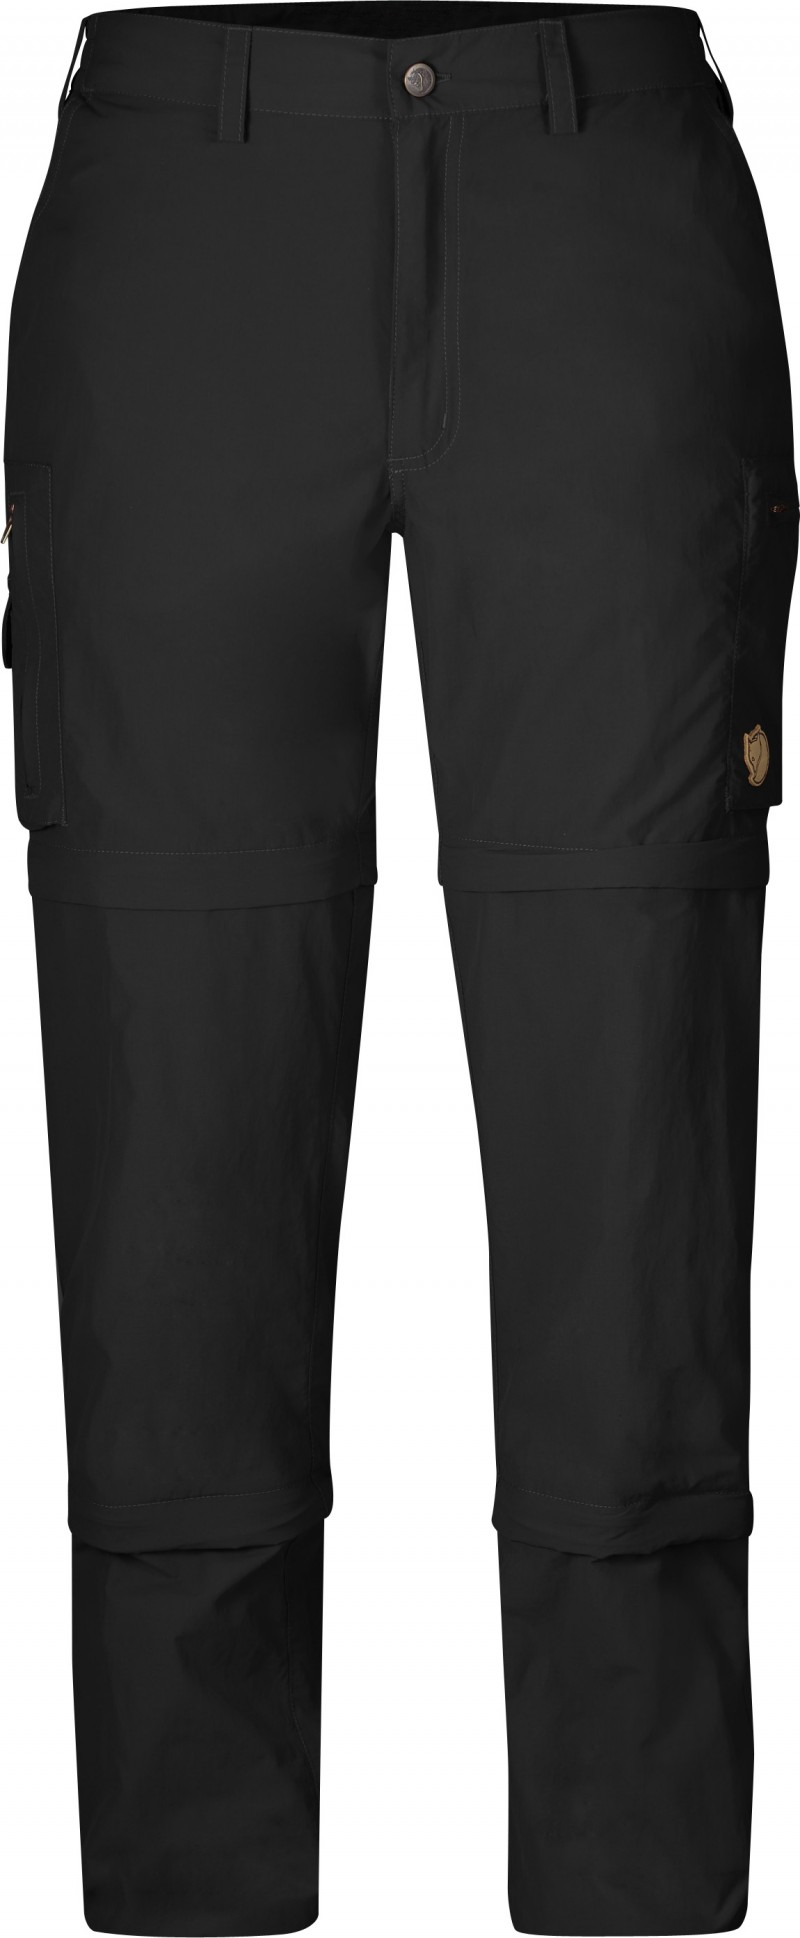 FjallRaven Sipora MT Trousers W. Dark Grey-30